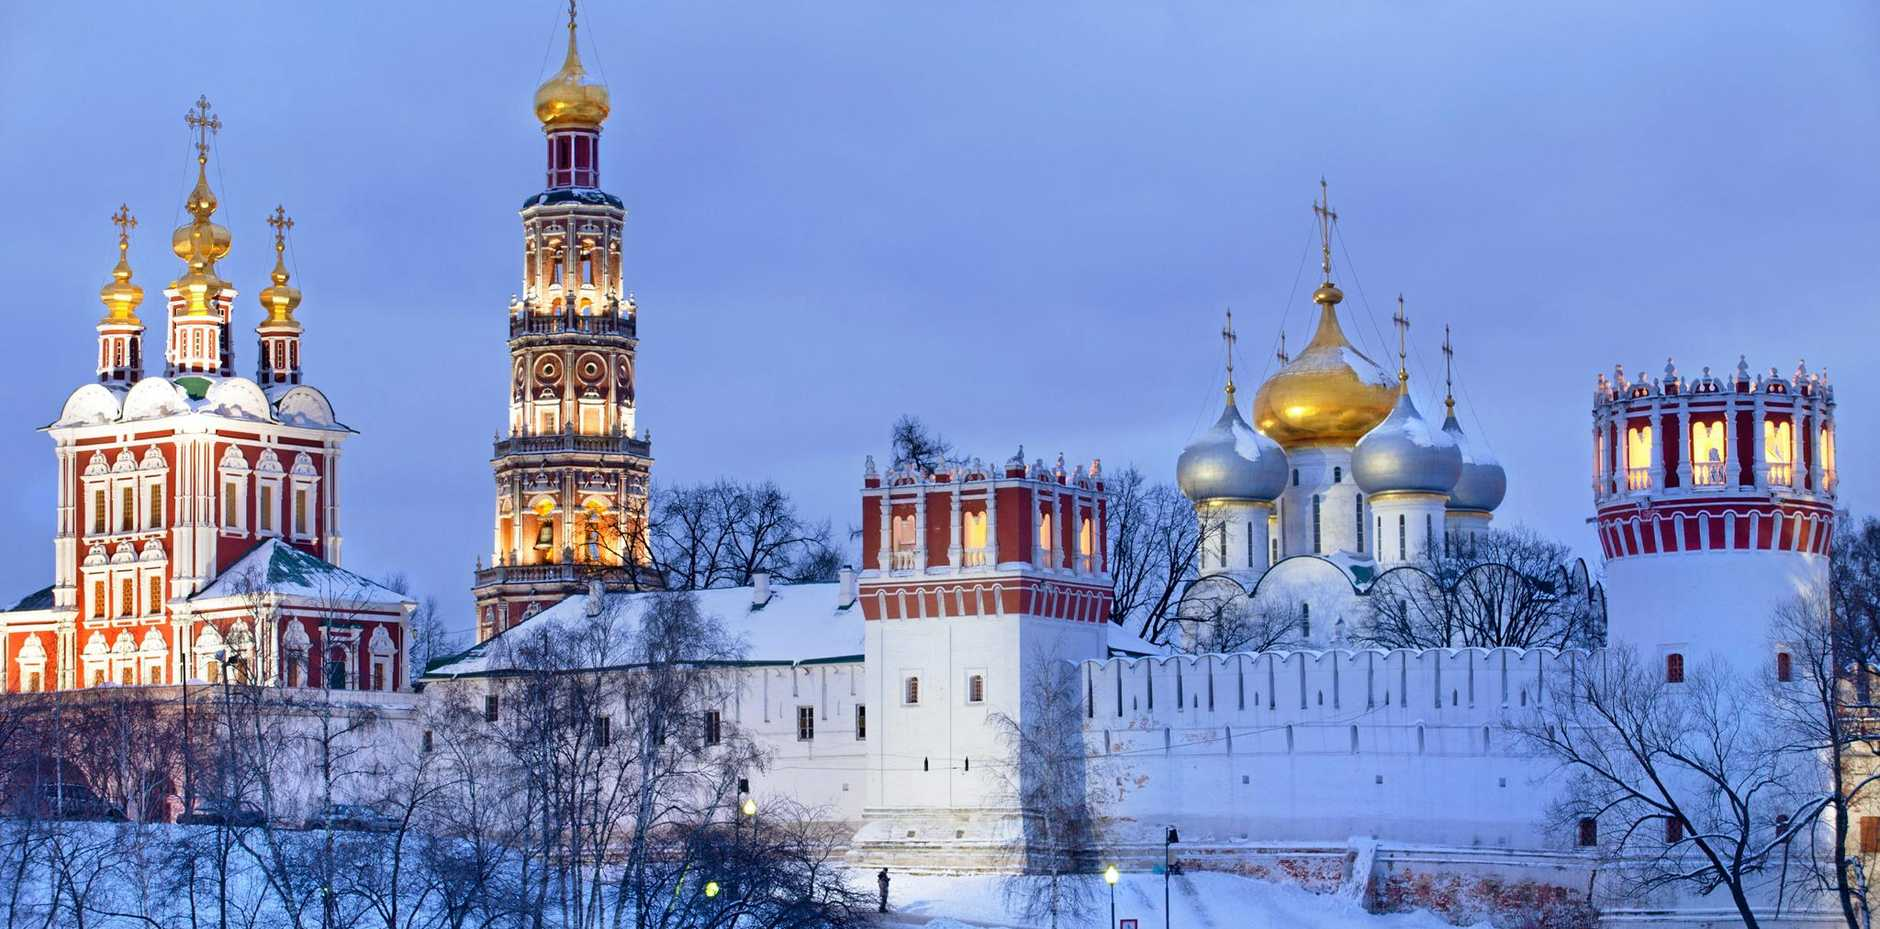 A winter view of Novodevichy convent in Moscow, Russia